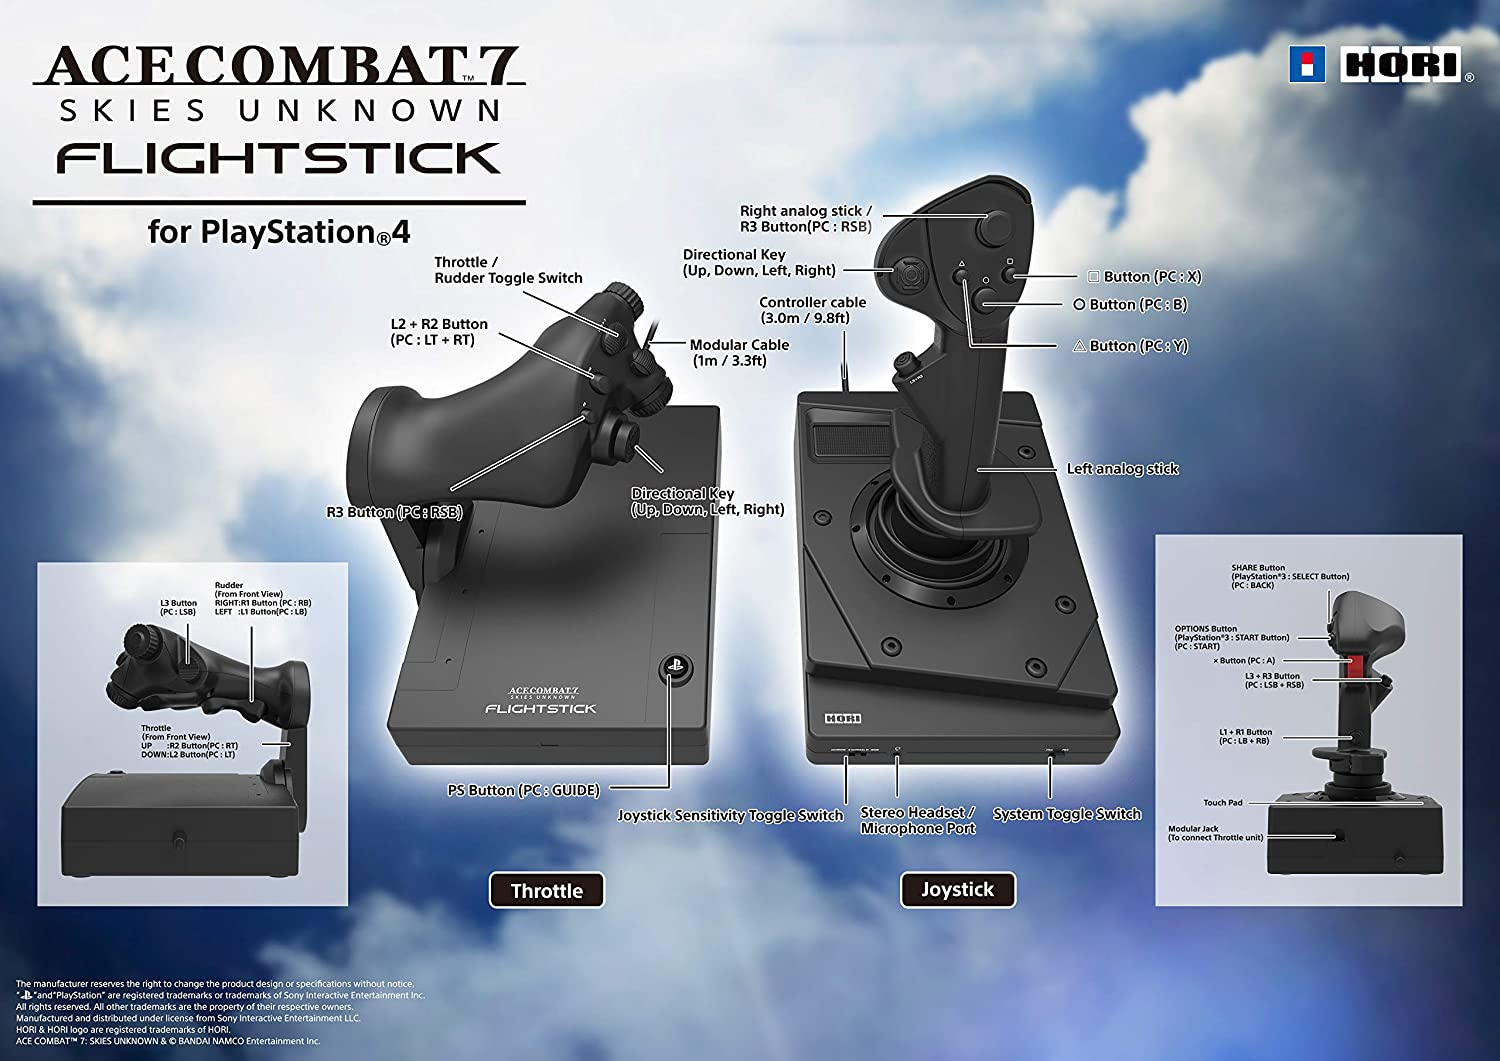 HORI Ace Combat 7 Hotas Flight Stick for PlayStation 4 Officially Licensed By SIEA /& Bandai Namco Entertainment